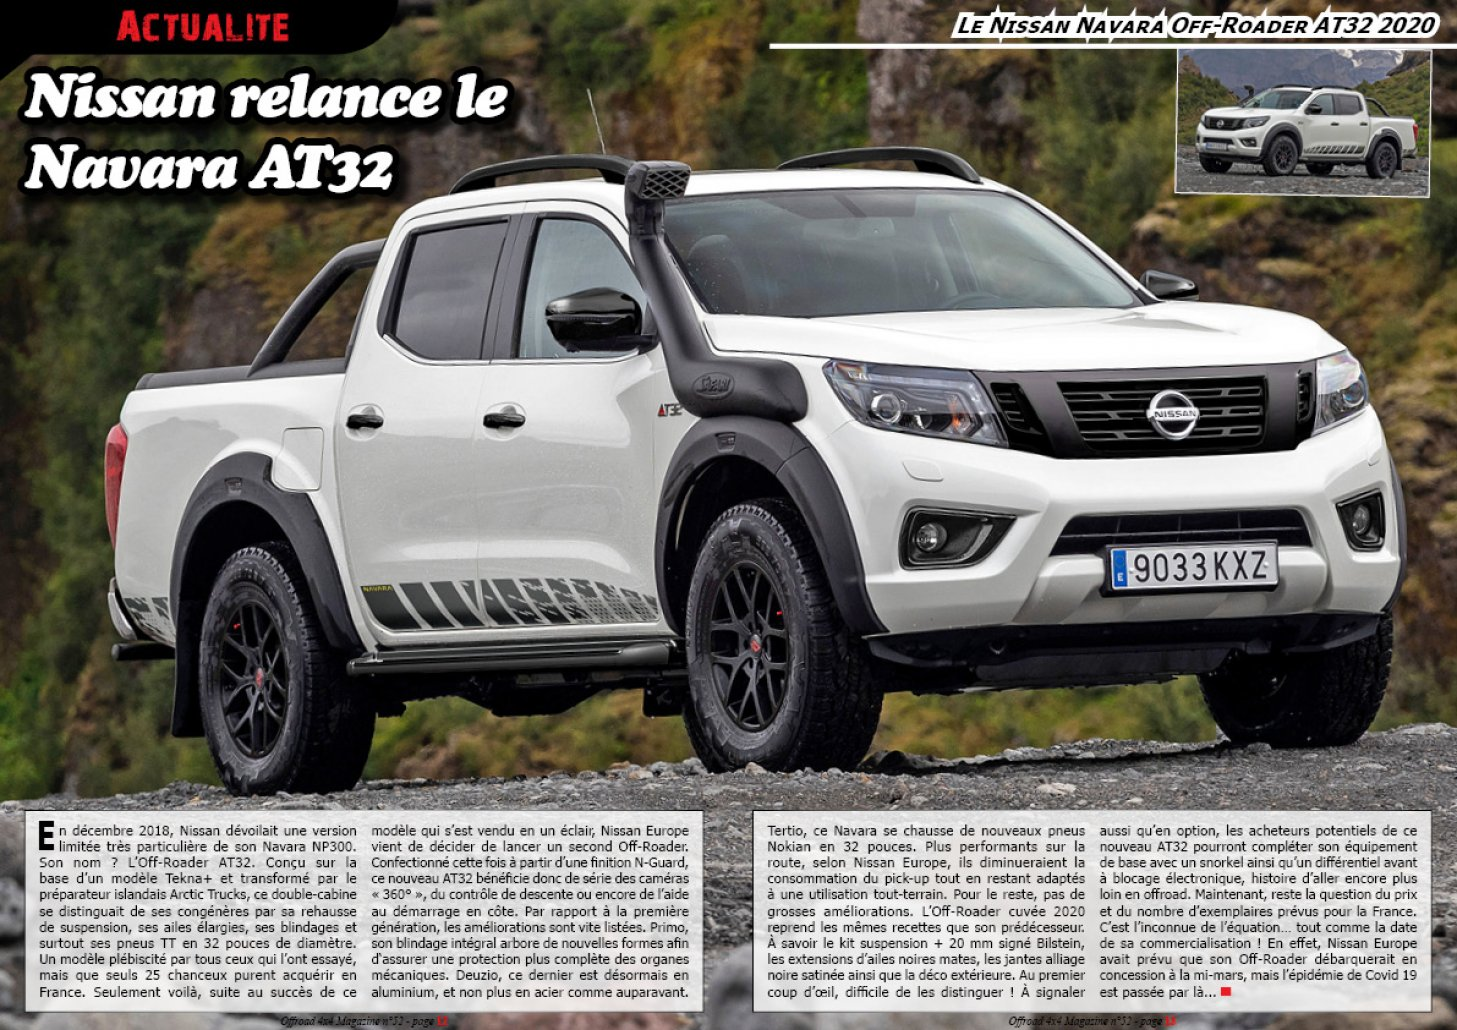 Le Nissan Navara Off-Roader AT32 2020